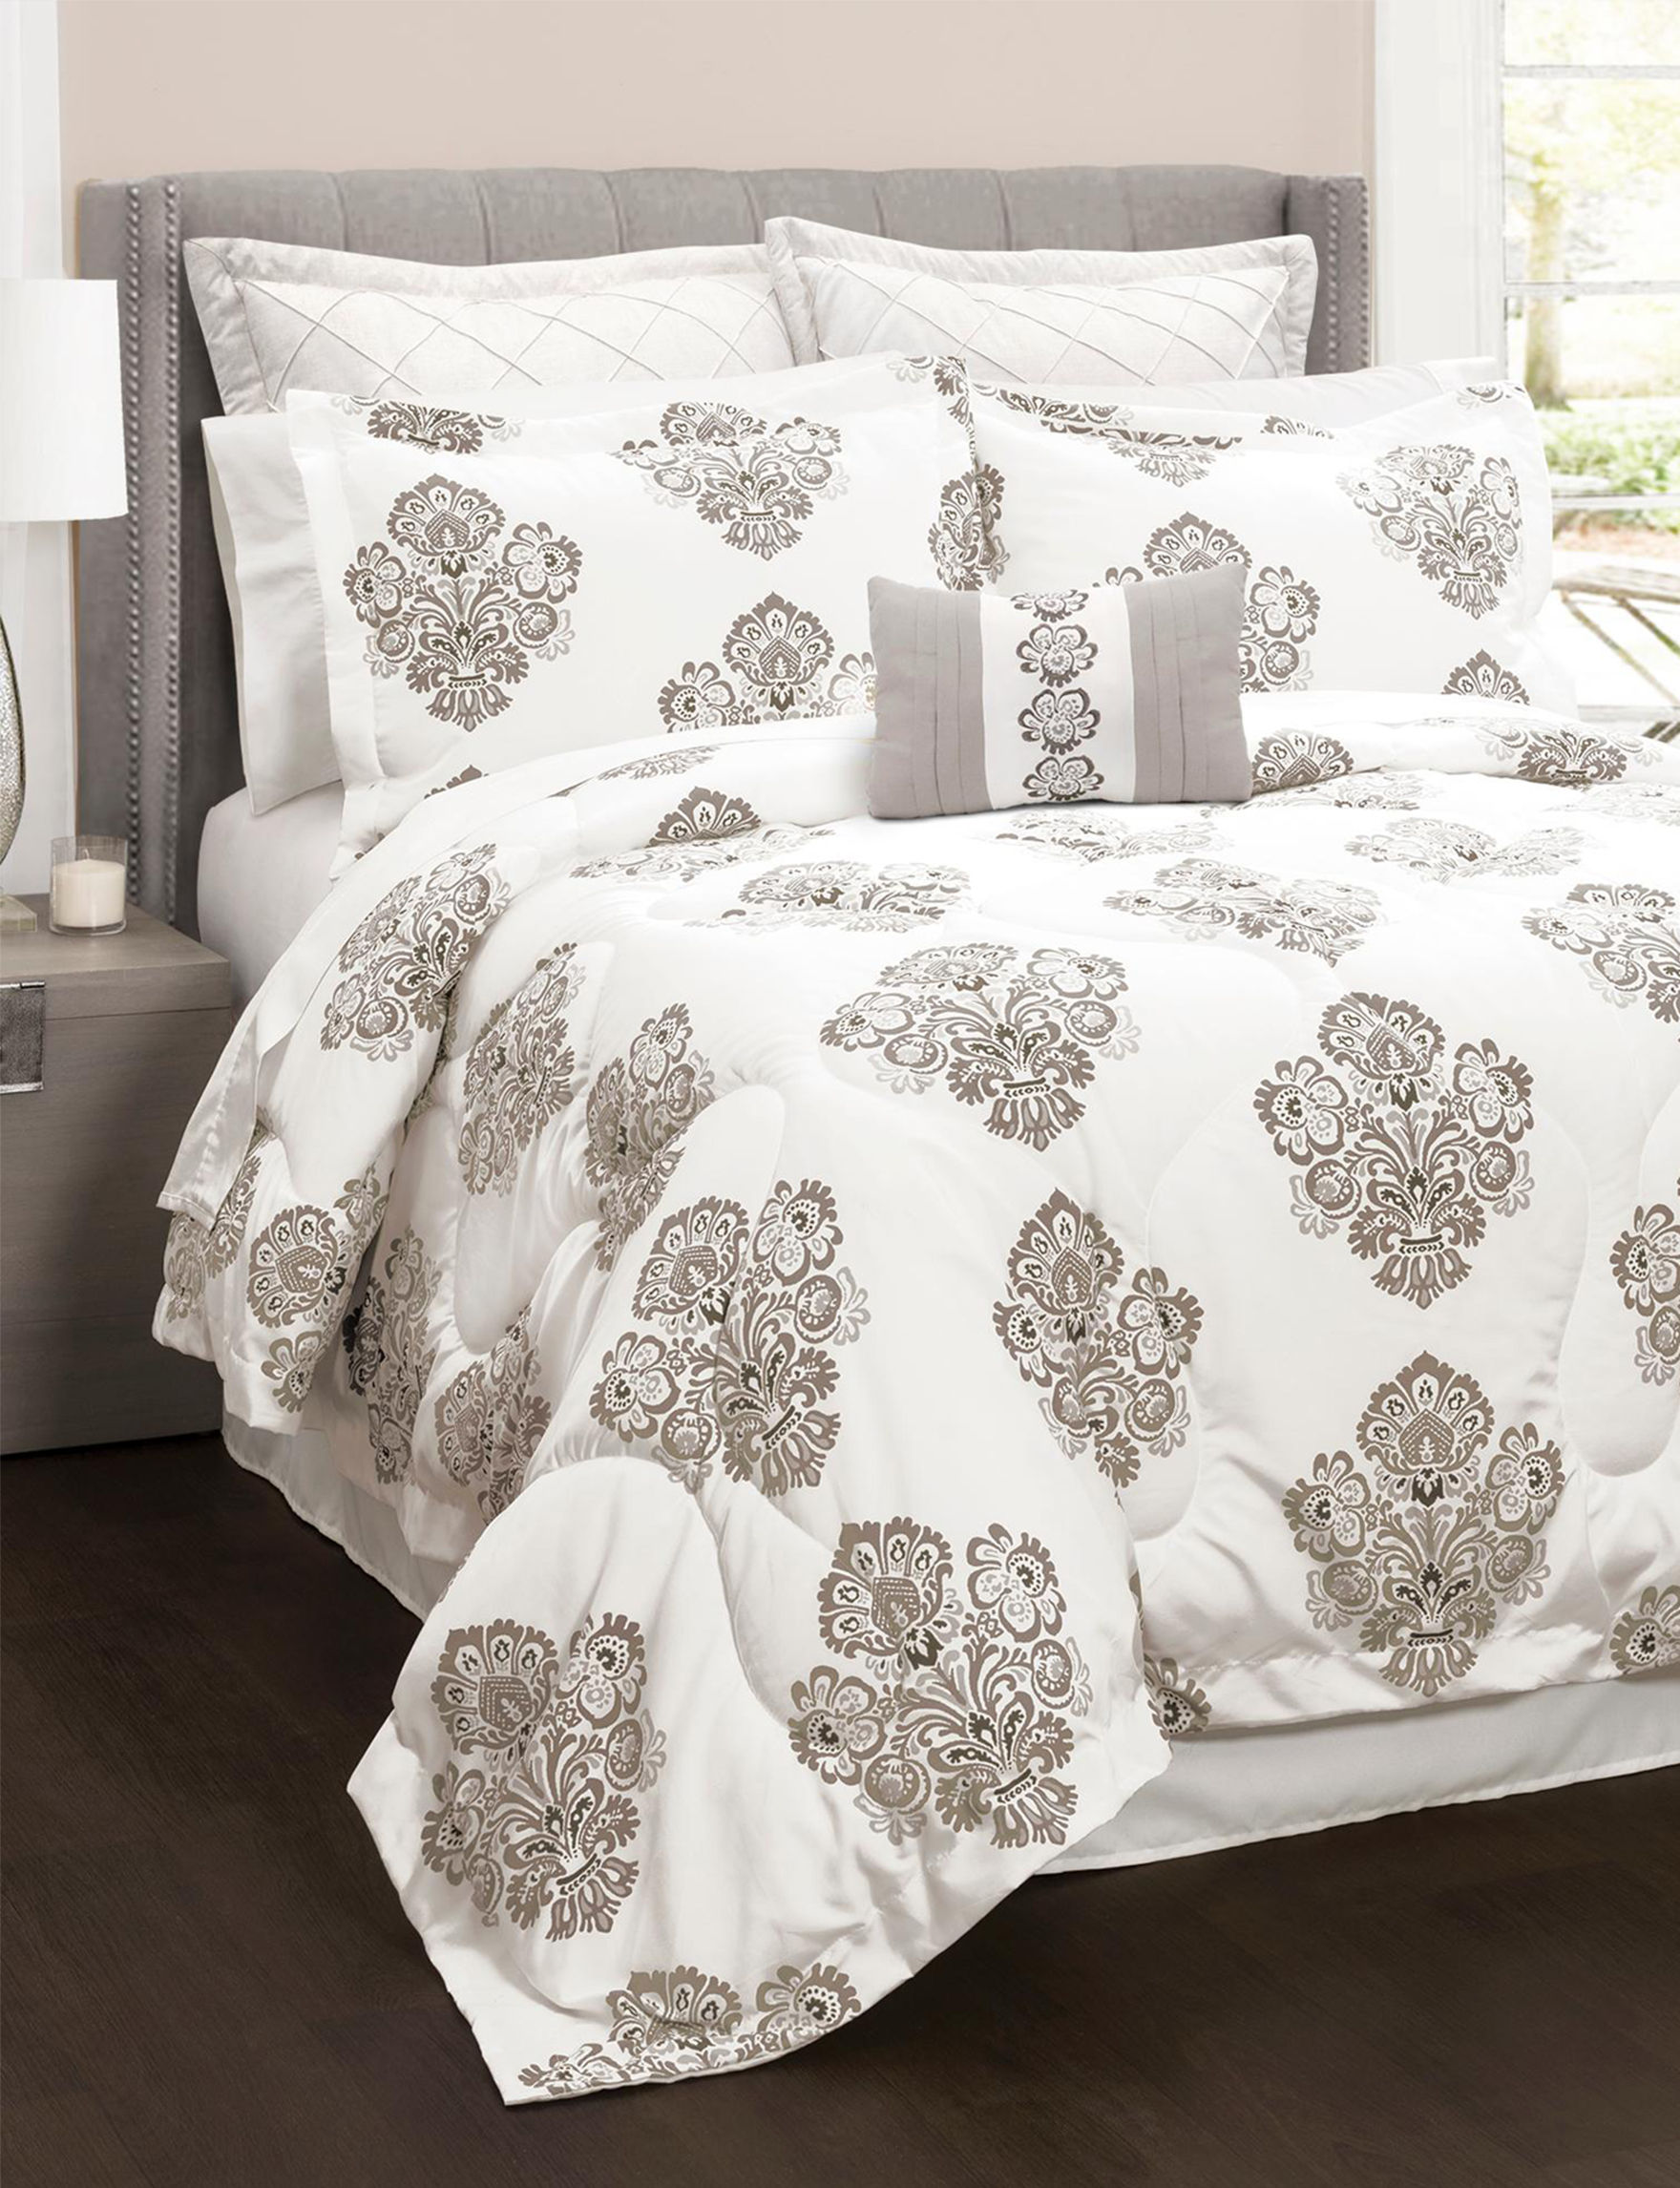 Lush Decor Grey Comforters & Comforter Sets